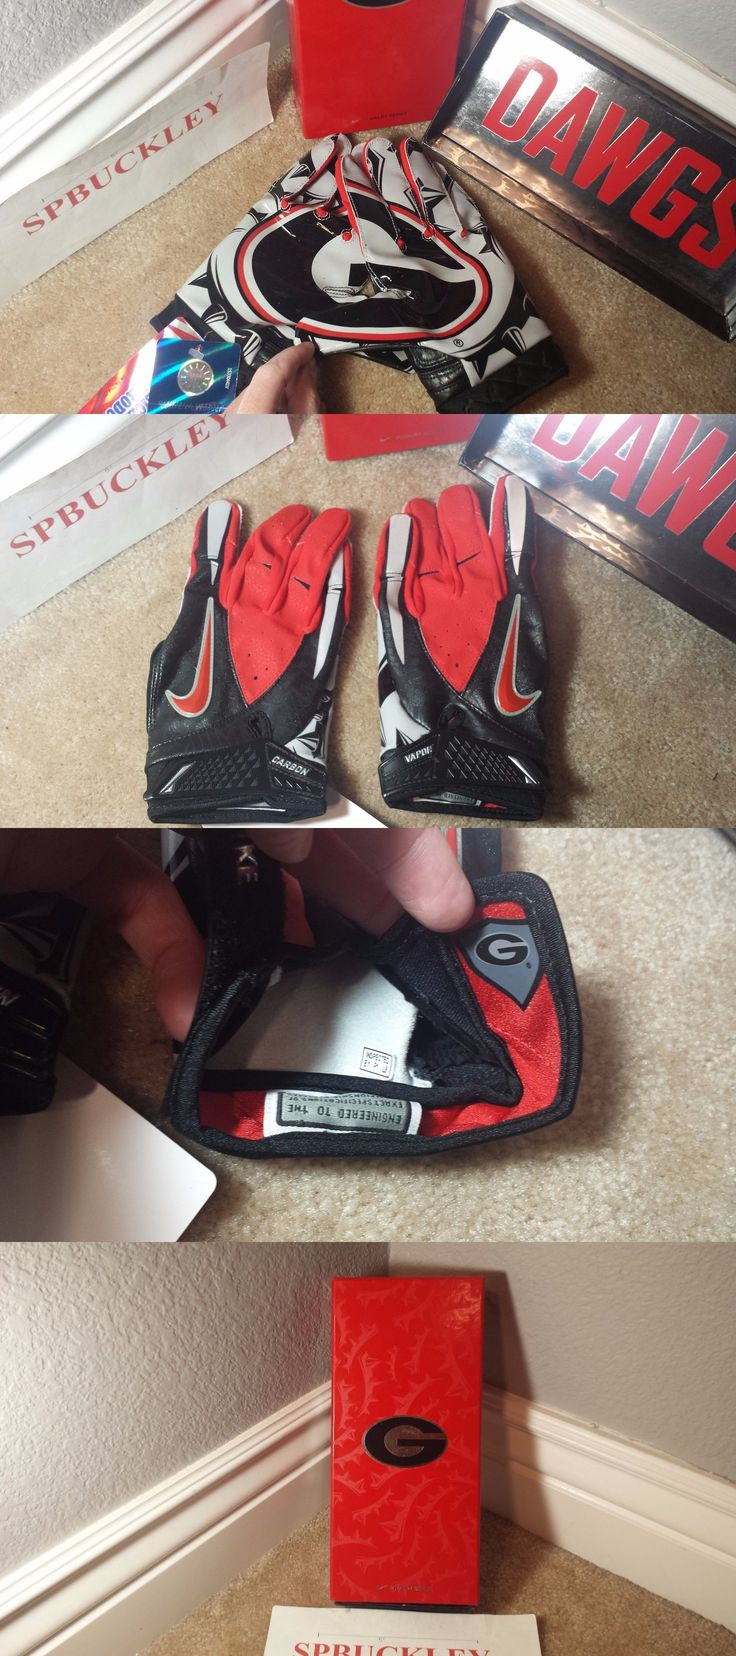 Gloves 159114: Nike Vapor Carbon Adult Xl Ncaa Georgia Bulldogs Football Receiver Gloves, New -> BUY IT NOW ONLY: $119.99 on eBay!